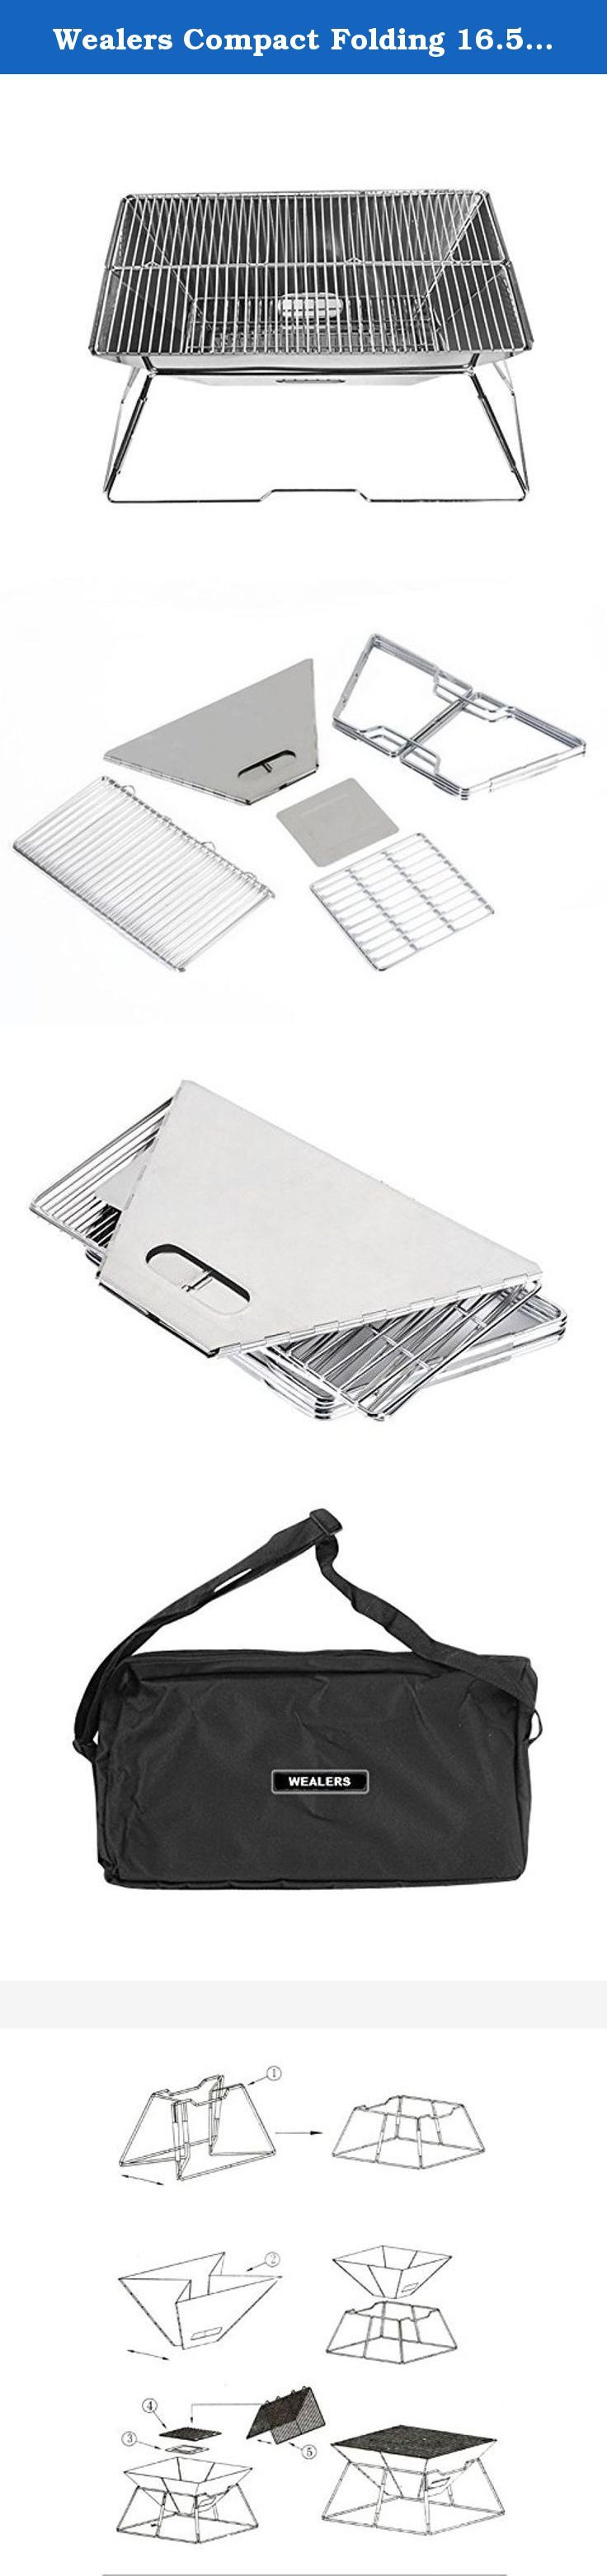 Wealers Compact Folding 16.5 X 12.5 Inch Charcoal BBQ Grill Made From Stainless Steel. Portable and Great for Camping, Picnics, Backpacking, Backyards, Survival, Emergency Preparation. The WEALERSTM folding grill set is a great way to take grilling with you wherever you go. Whether it's on a camp out, at the RV park or in the backyard, your Quick Grill is a fun and easy way to enjoy a meal with friends and family. The highly compact design allows the Grill to be easily set up and easily...